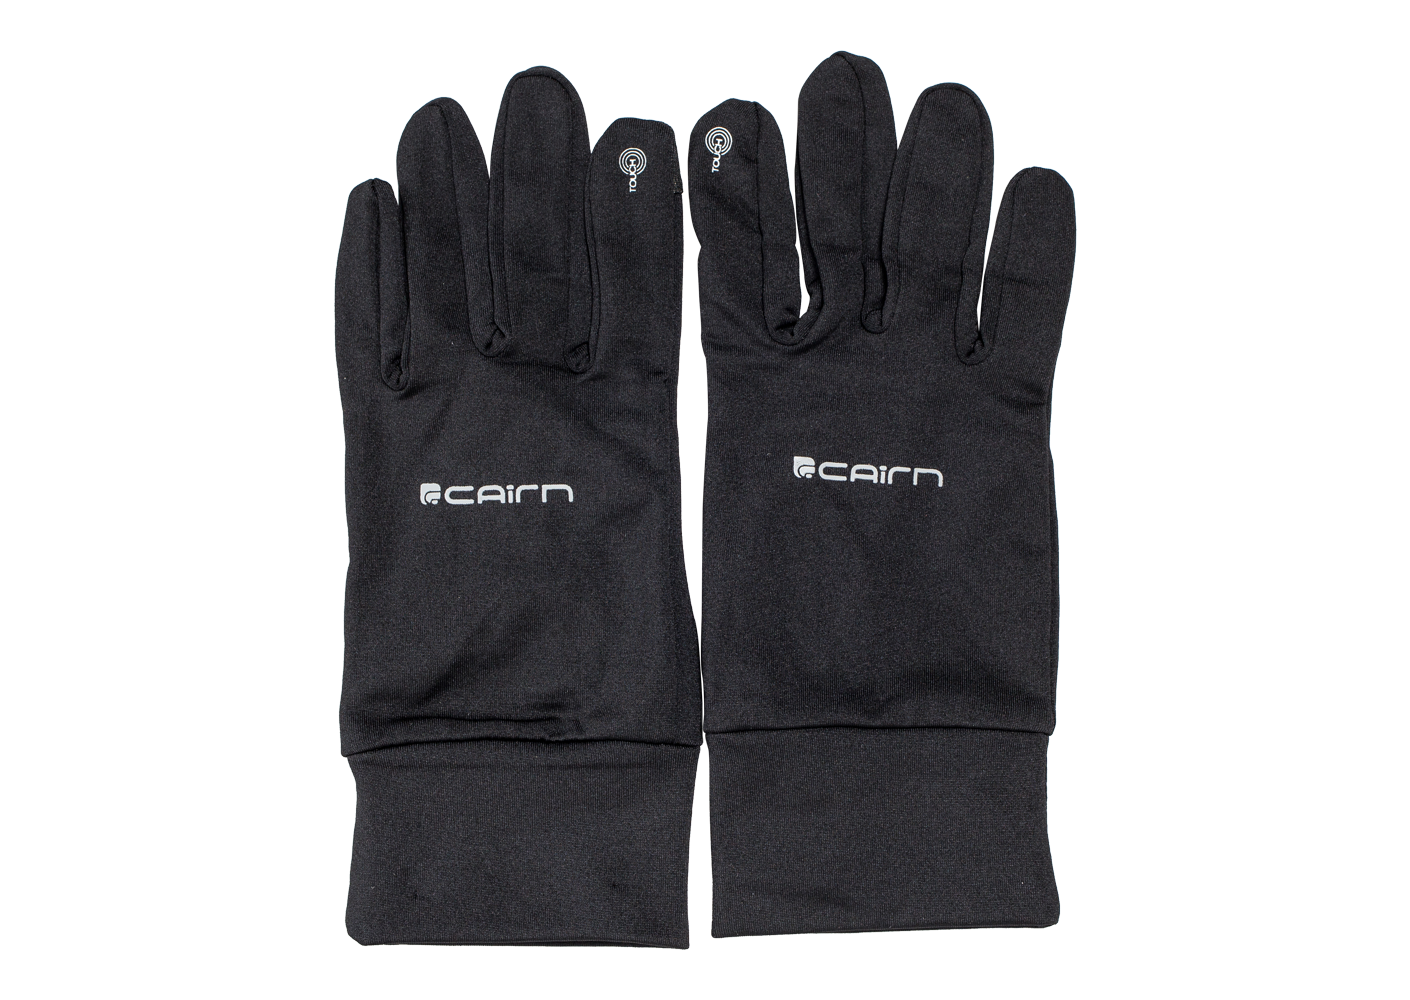 Cairn Homme Gants Softex Tactile Touch Noirs